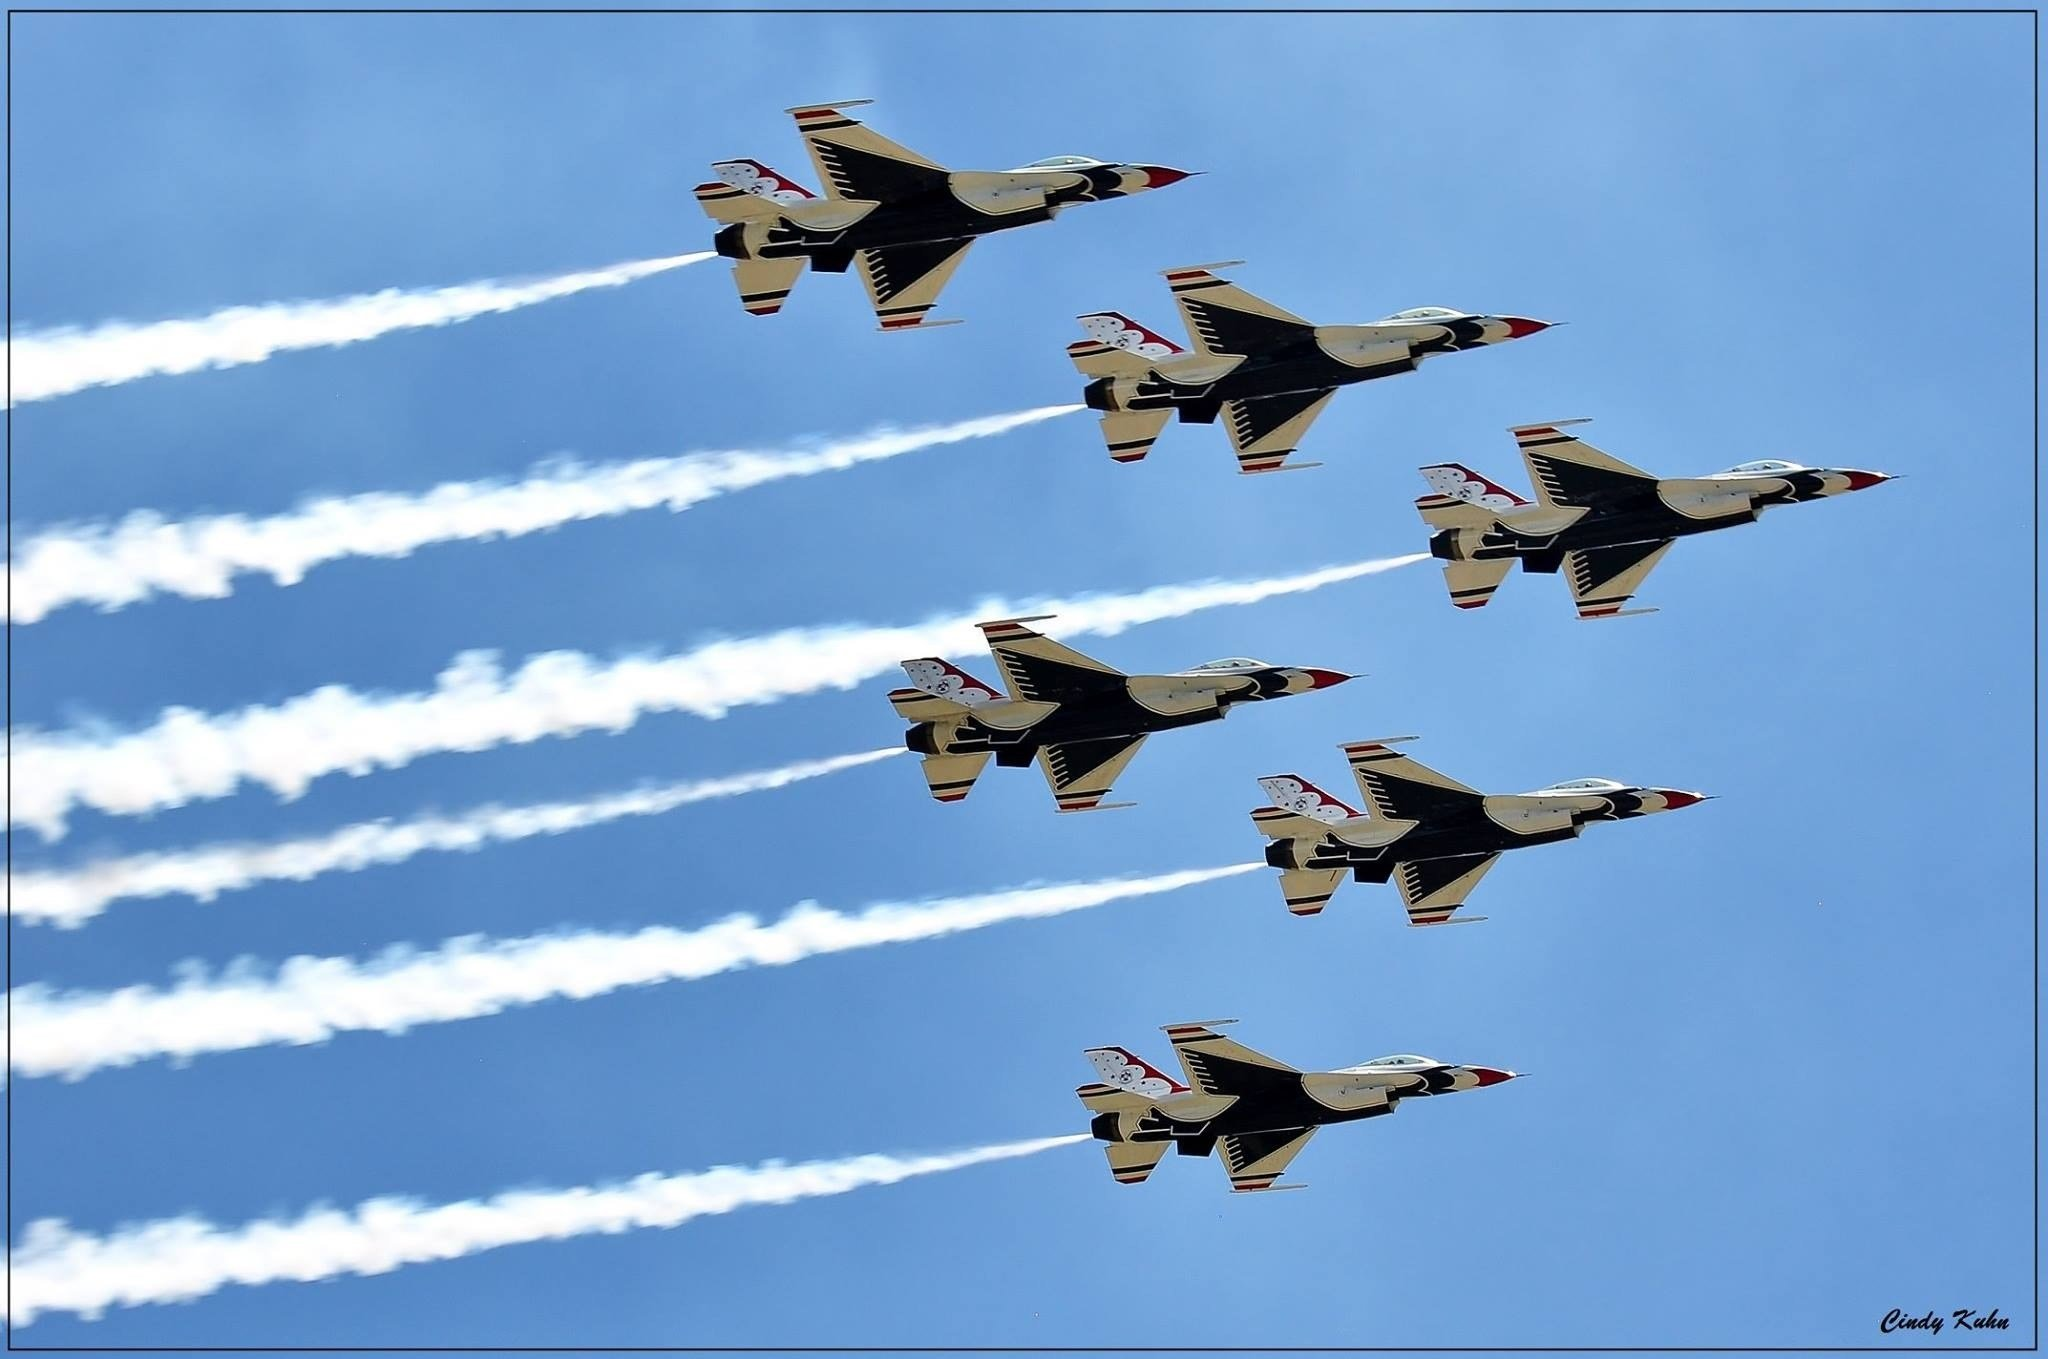 The Air Force Thunderbirds fly over Colorado Springs during the 2017 Air Force Academy Graduation.